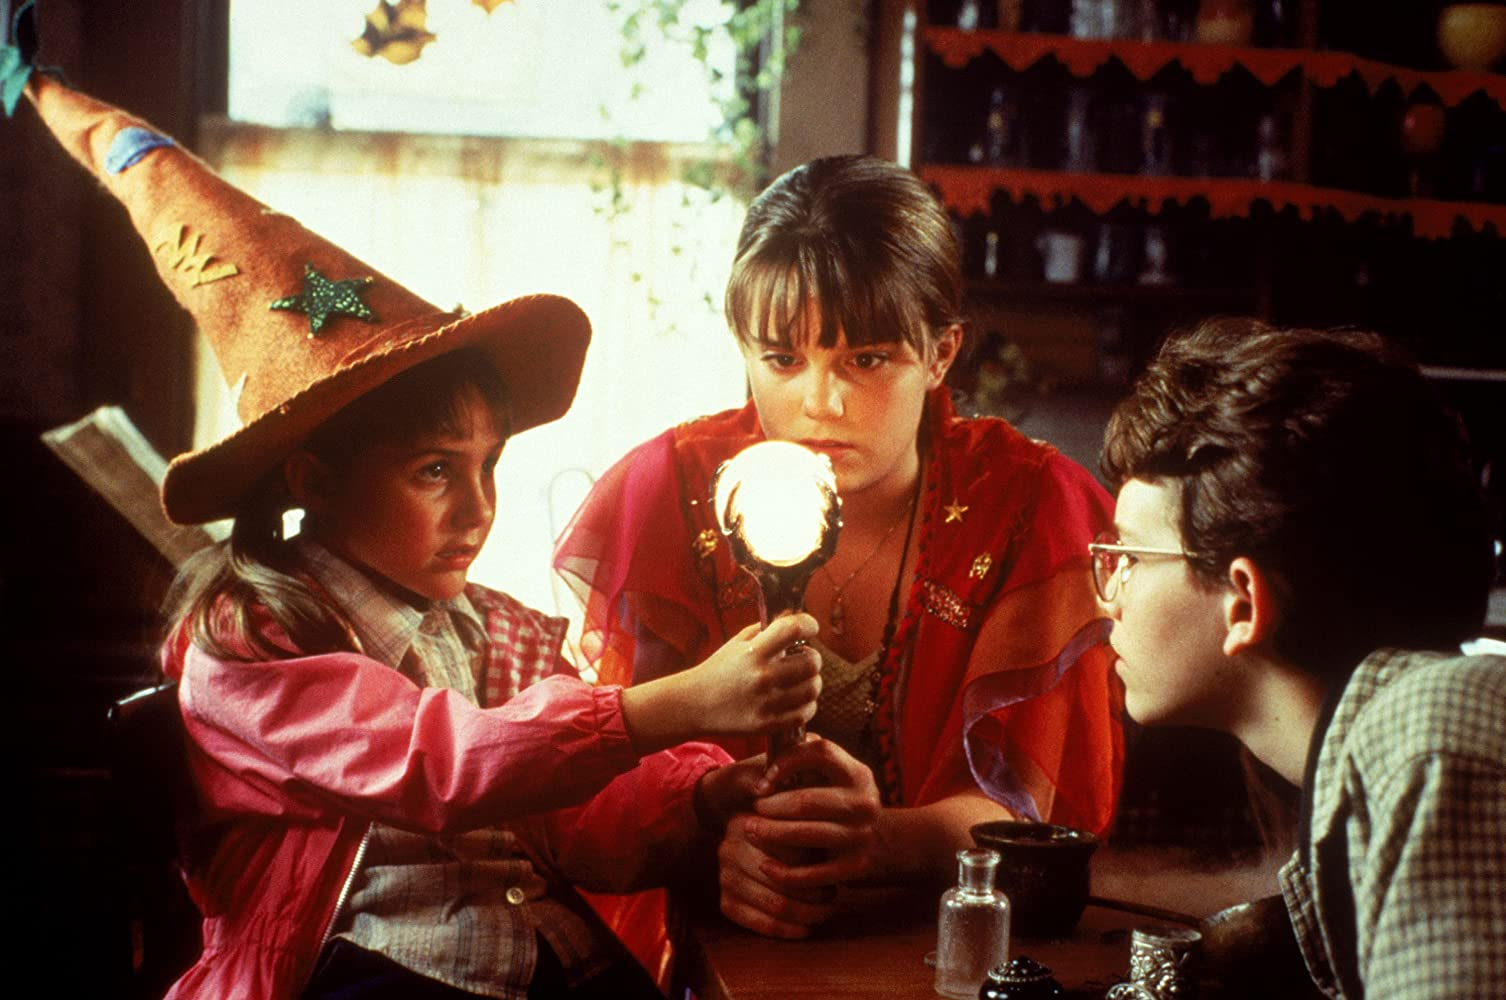 Kimberly J. Brown, Emily Roeske, and Joey Zimmerman in Halloweentown (1998)